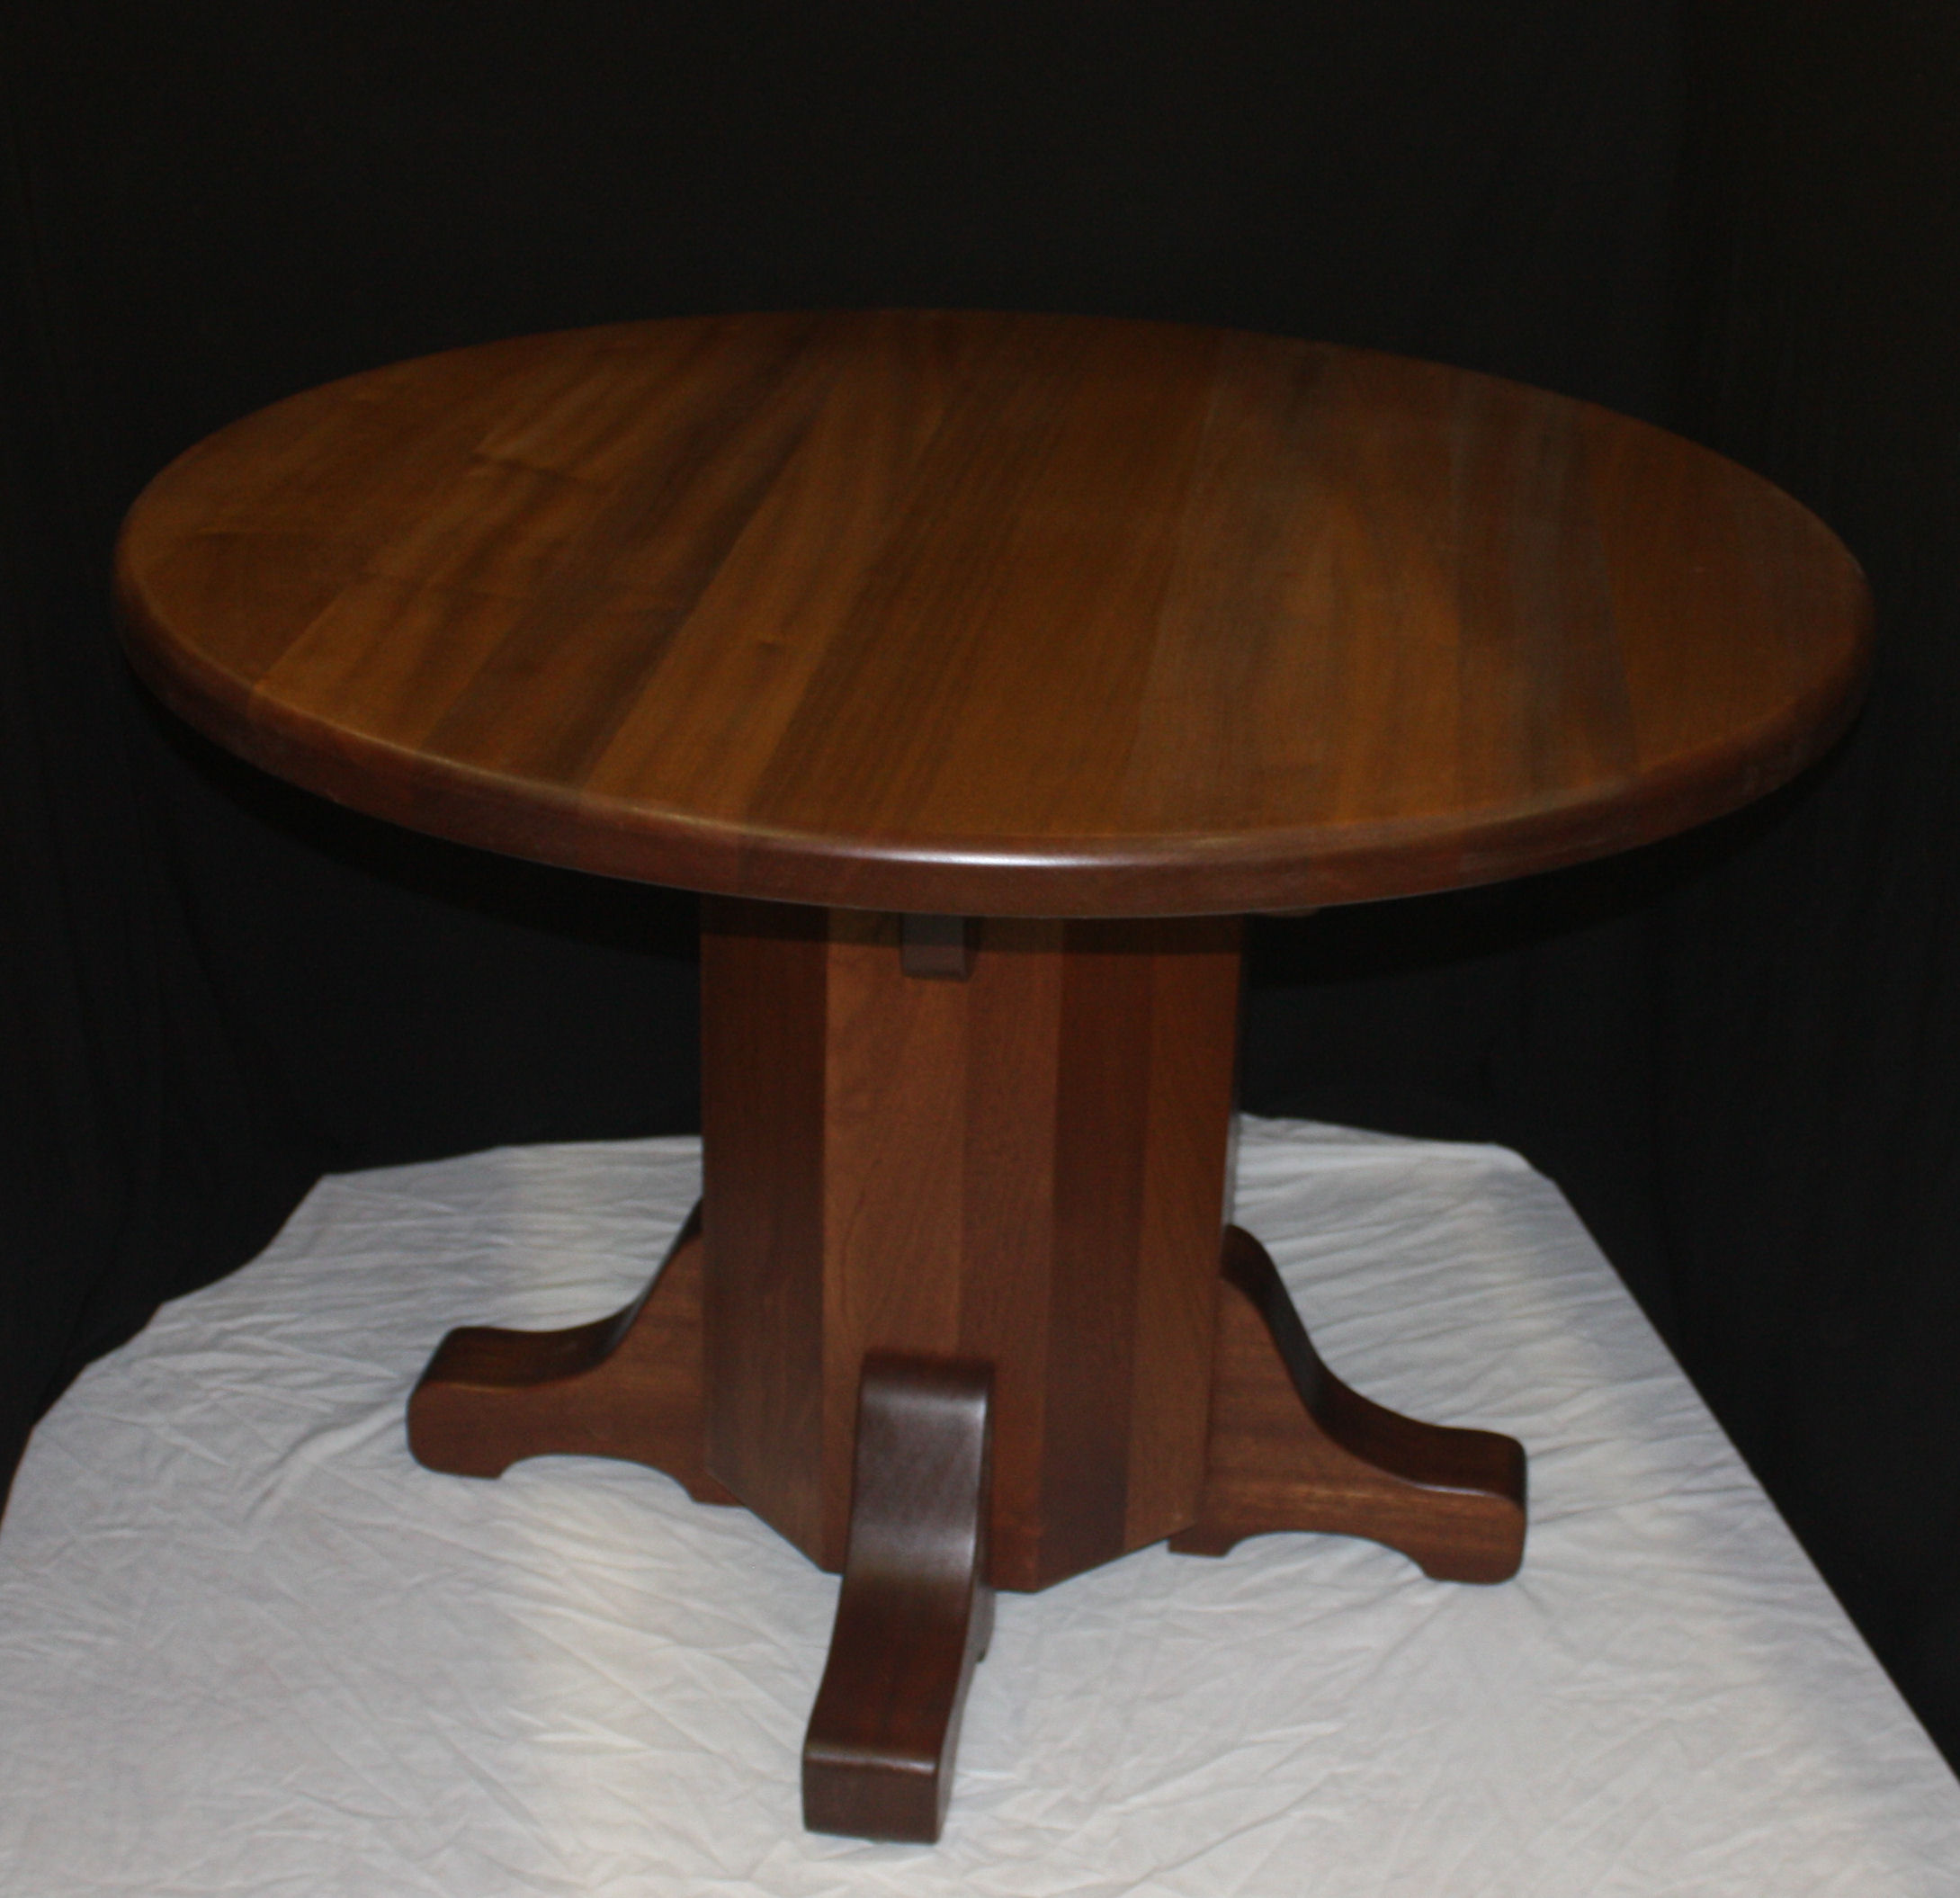 Three Mile Canyon Farms Personal Office Table Solid Wood Tables